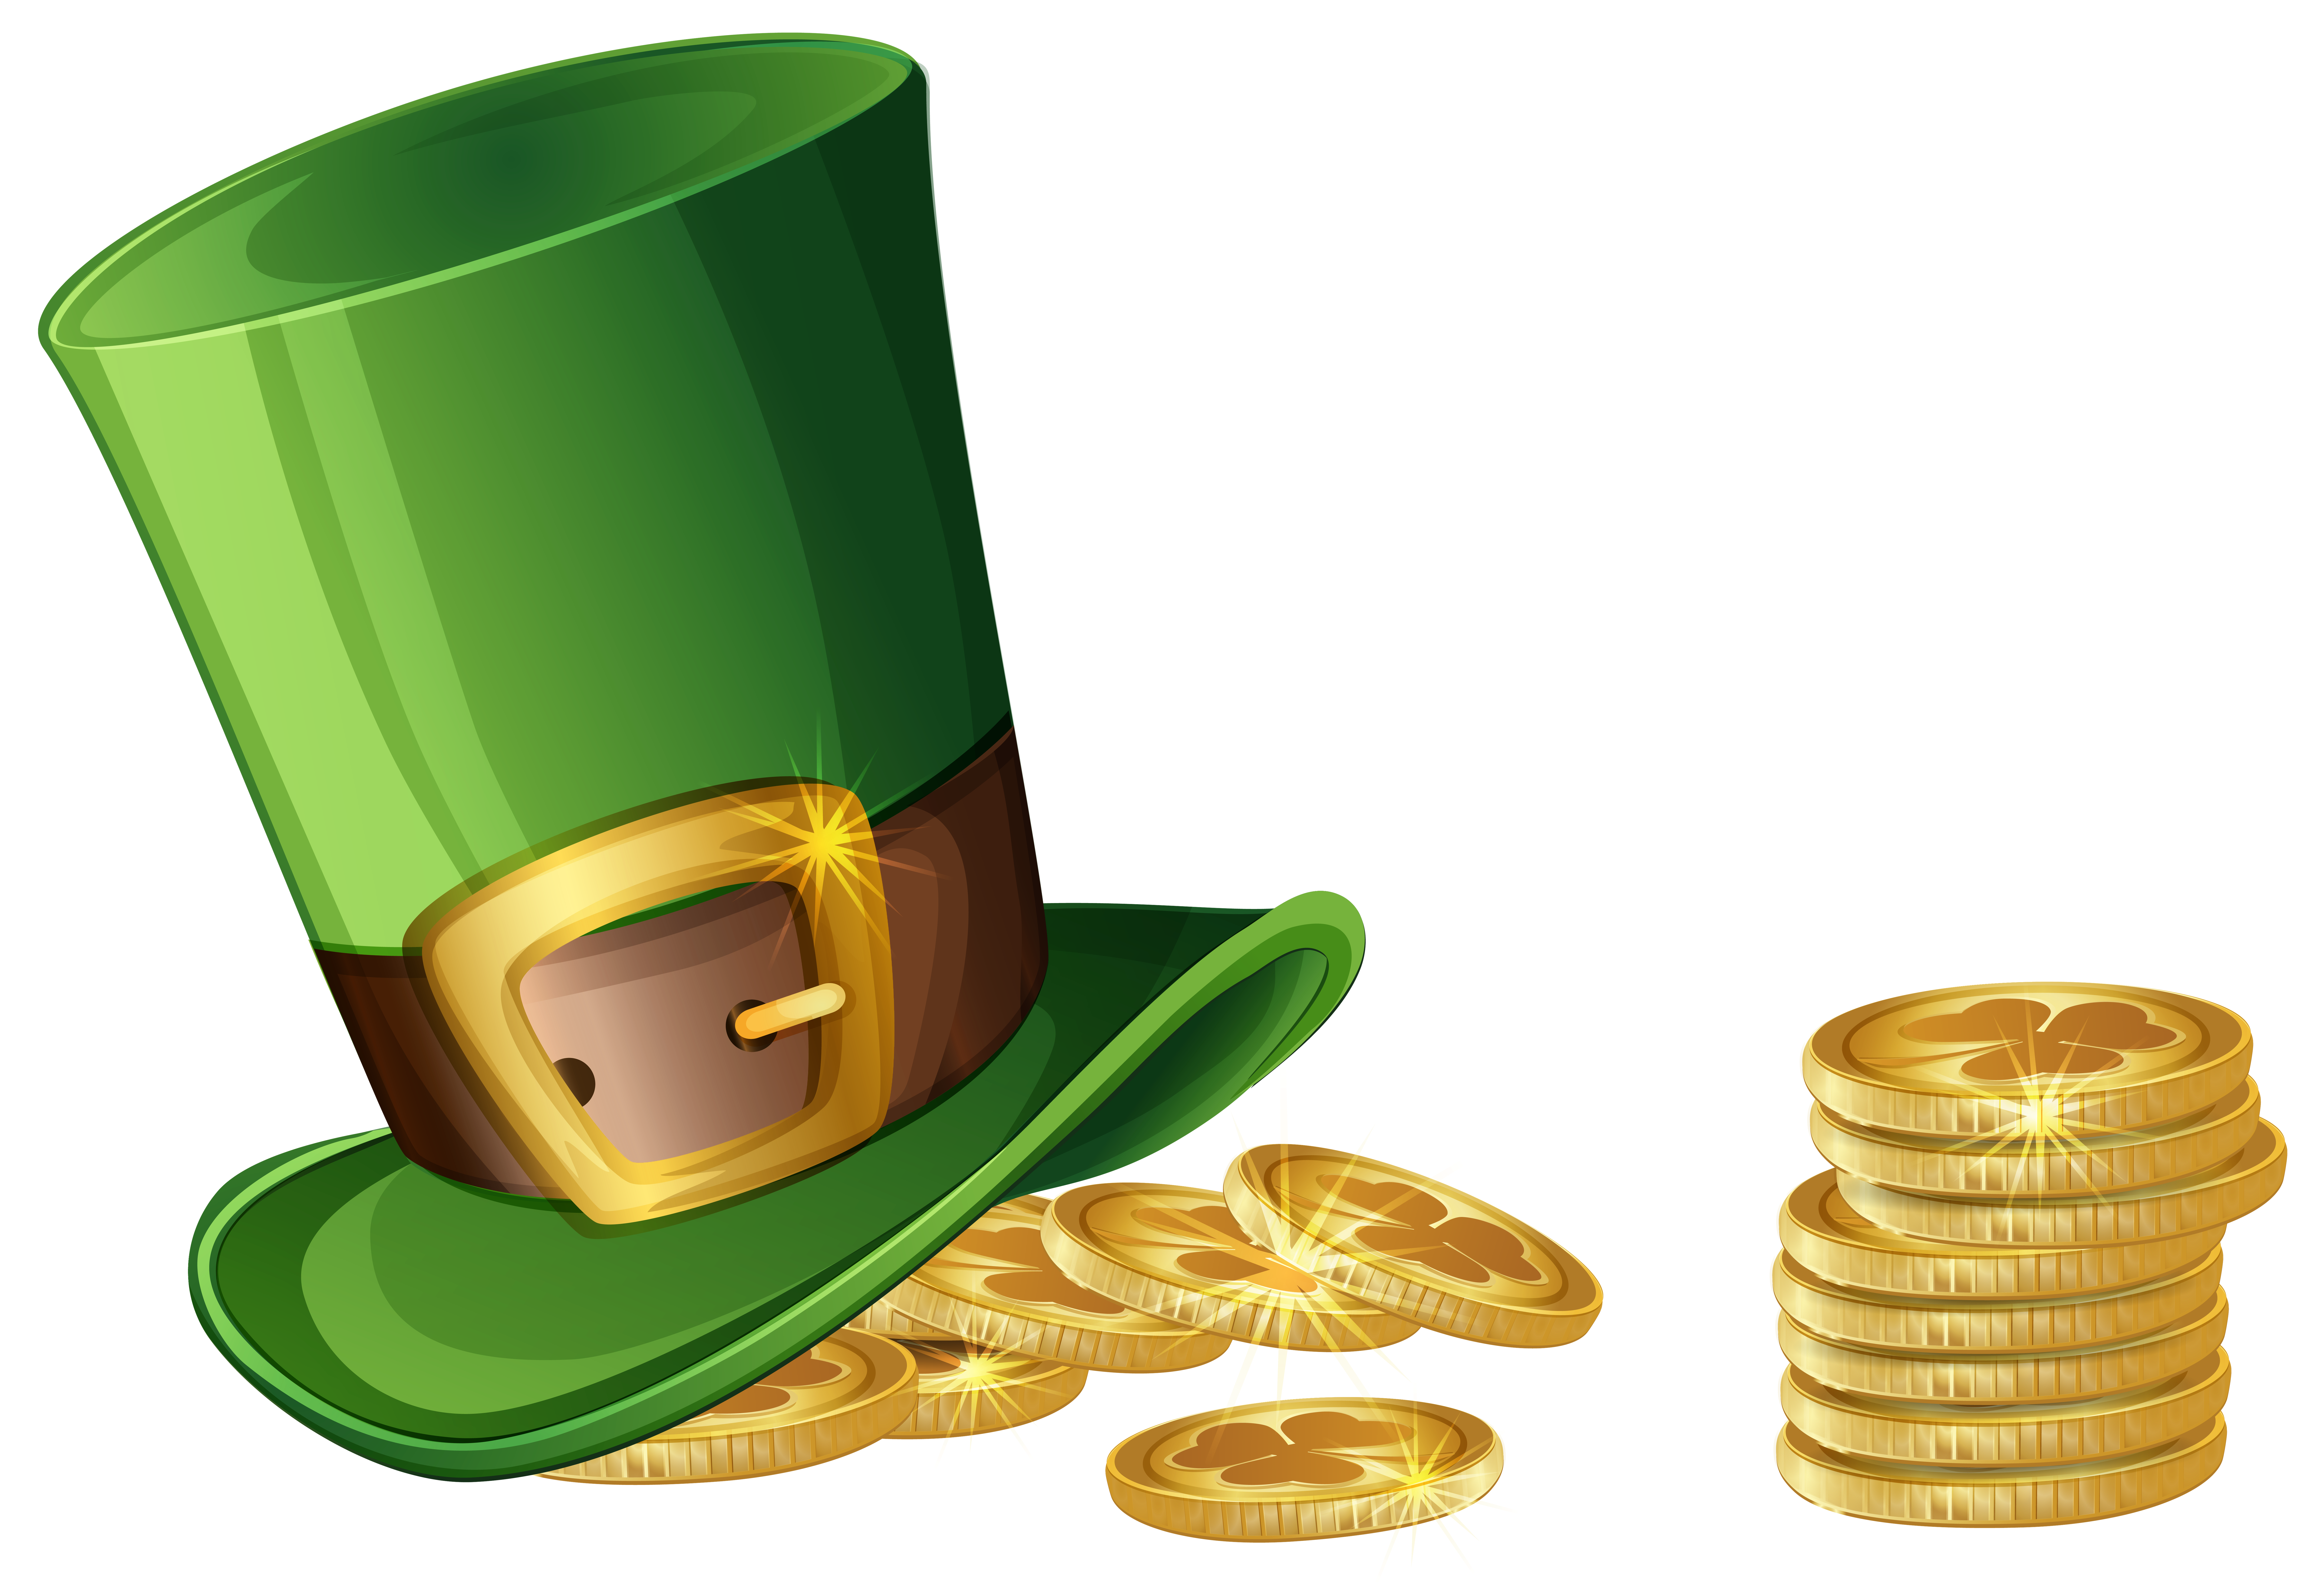 Money hat clipart clip royalty free St Patricks Day Hat and Coins Transparent PNG Clip Art Image ... clip royalty free